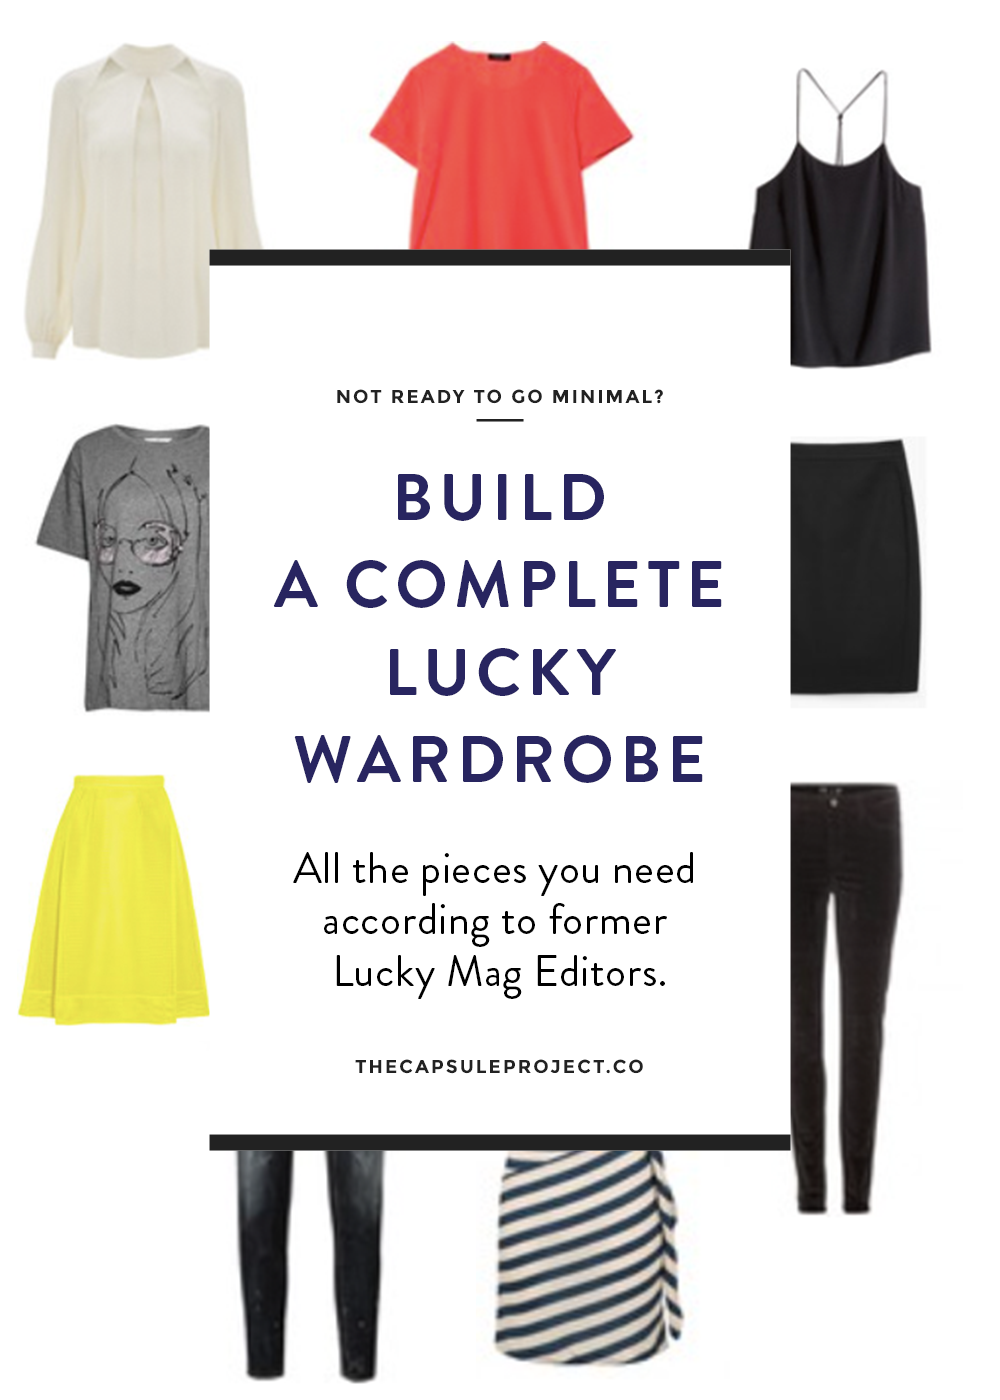 Not ready for a capsule wardrobe but want to make sure your closet makes sense? Check out this complete wardrobe builder.